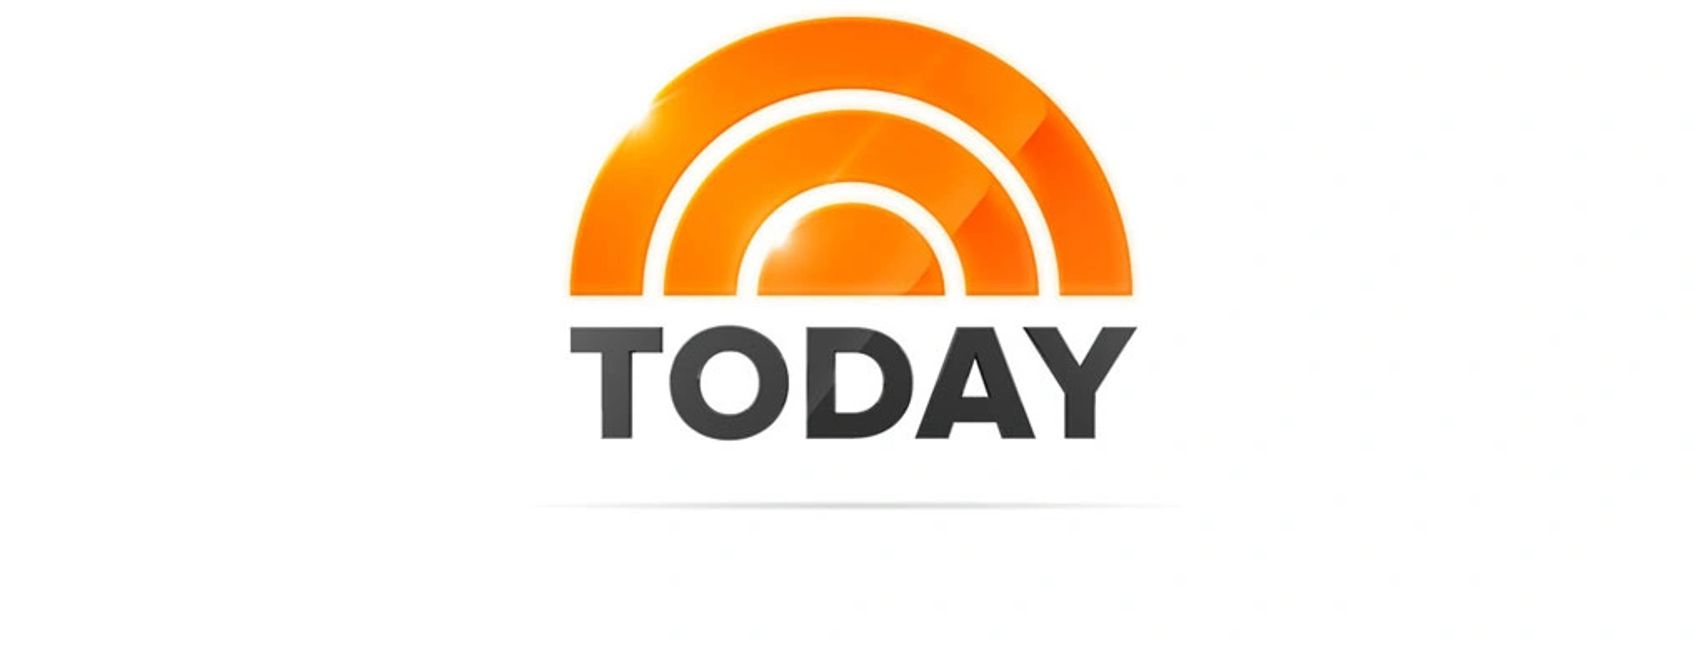 Defeat Melanoma visits the Today Show